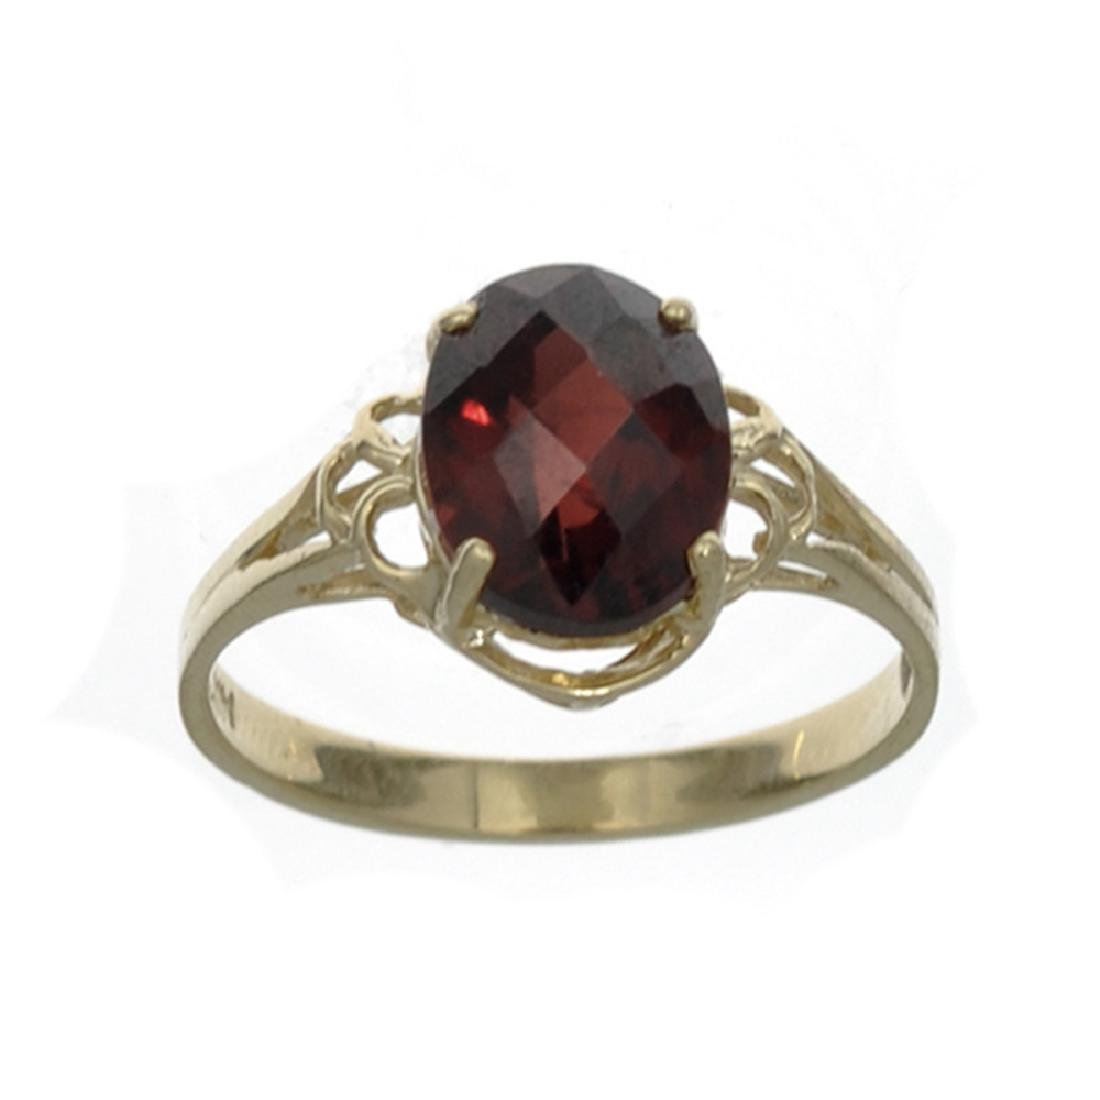 APP: 0.6k Fine Jewelry 14KT Gold, 3.21CT Oval Cut Red